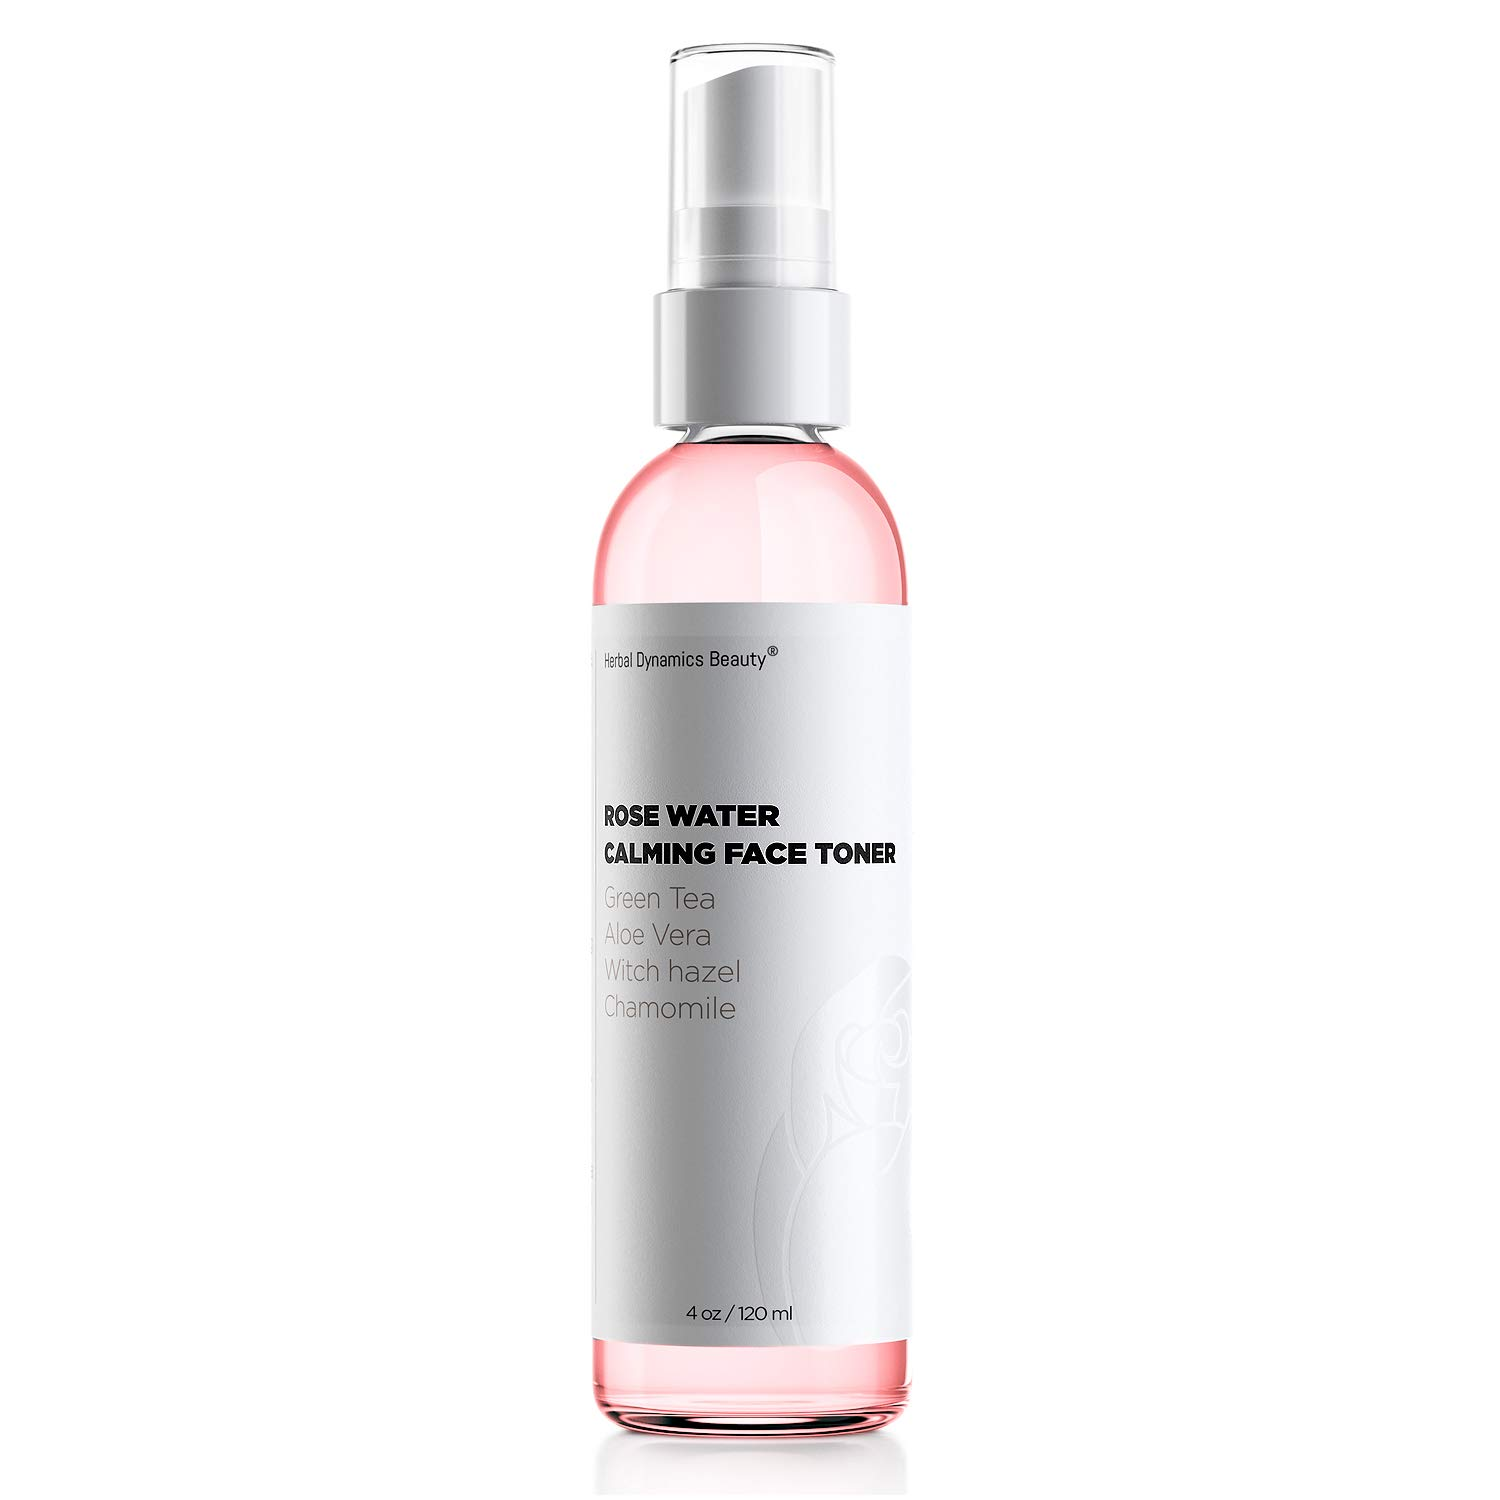 HD Beauty Rose Water Hydrating Face Toner Mist with Calming Aloe, Hyaluronic Acid and Organic Anti-Aging Ingredients, 4 oz. by Herbal Dynamics Beauty